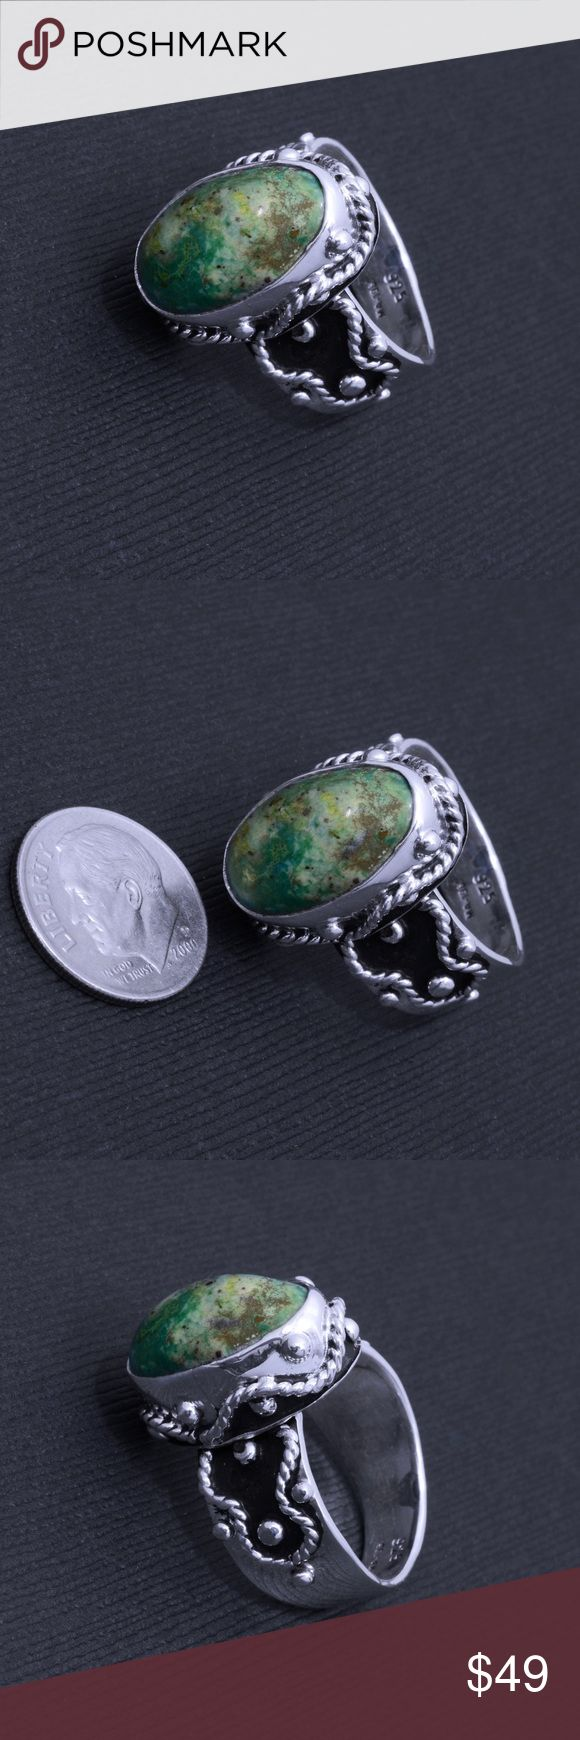 """Sterling Silver and Azurite Ring Stamped """"925"""".  This is not a stock photo. The image is of the actual article that is being sold  Sterling silver is an alloy of silver containing 92.5% by mass of silver and 7.5% by mass of other metals, usually copper. The sterling silver standard has a minimum millesimal fineness of 925.  All my jewelry is solid sterling silver. I do not plate.   Hand crafted in Taxco, Mexico.  Will ship within 2 days of order. Jewelry Rings"""